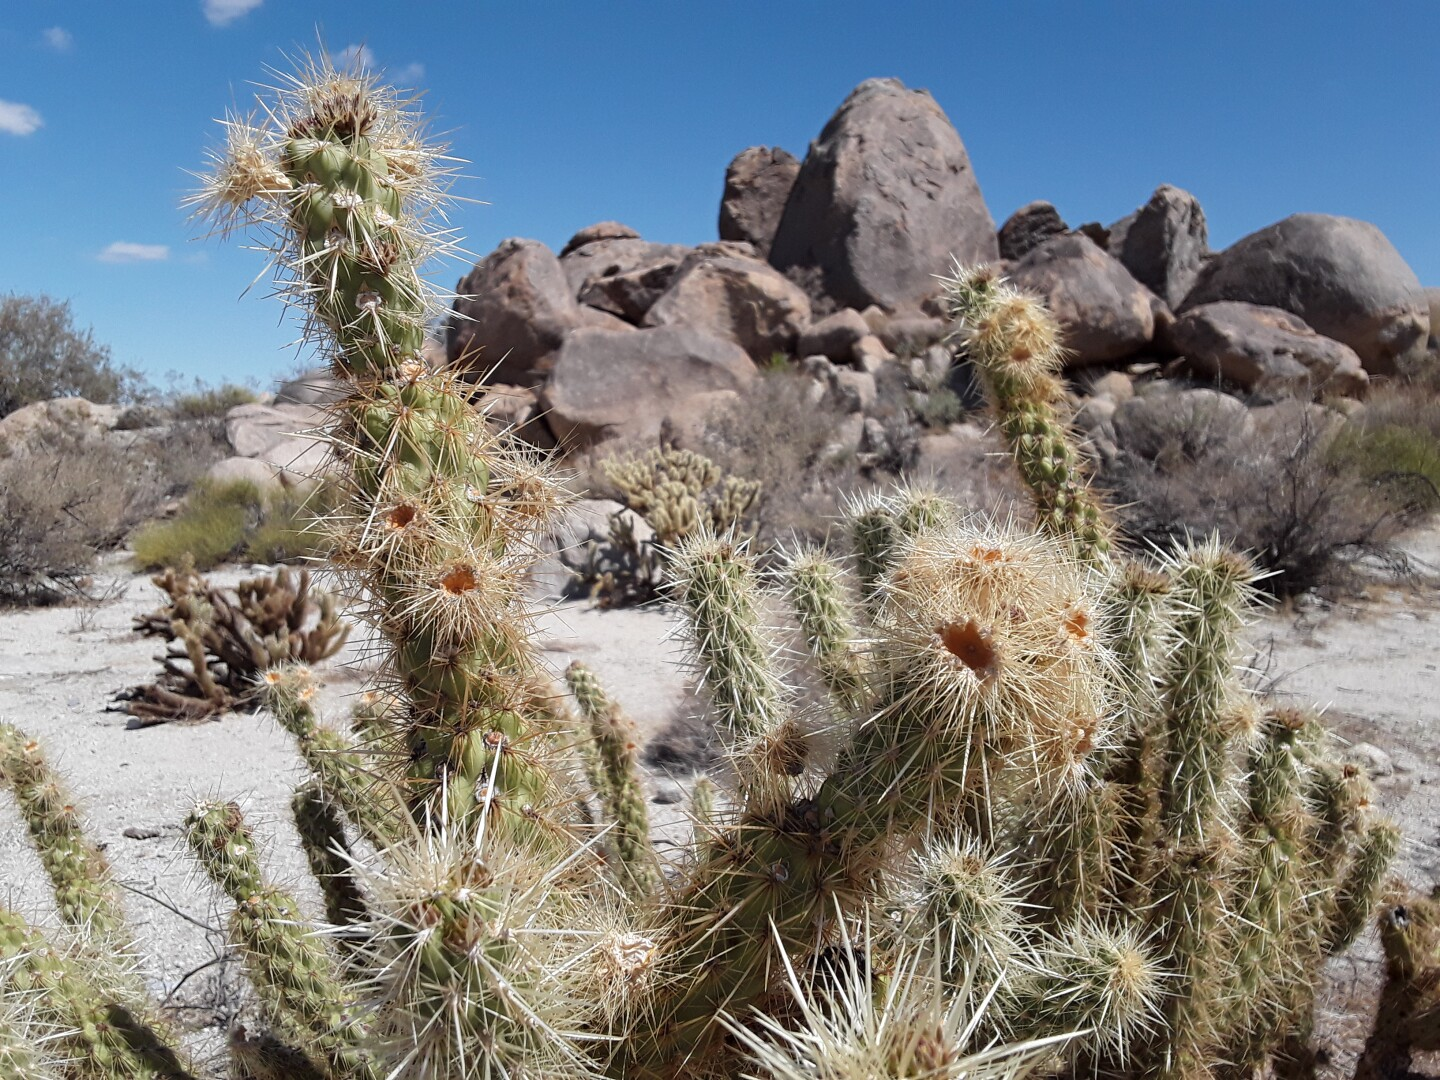 A close-up photo of cactuses at the Kumeyaay Village Site.